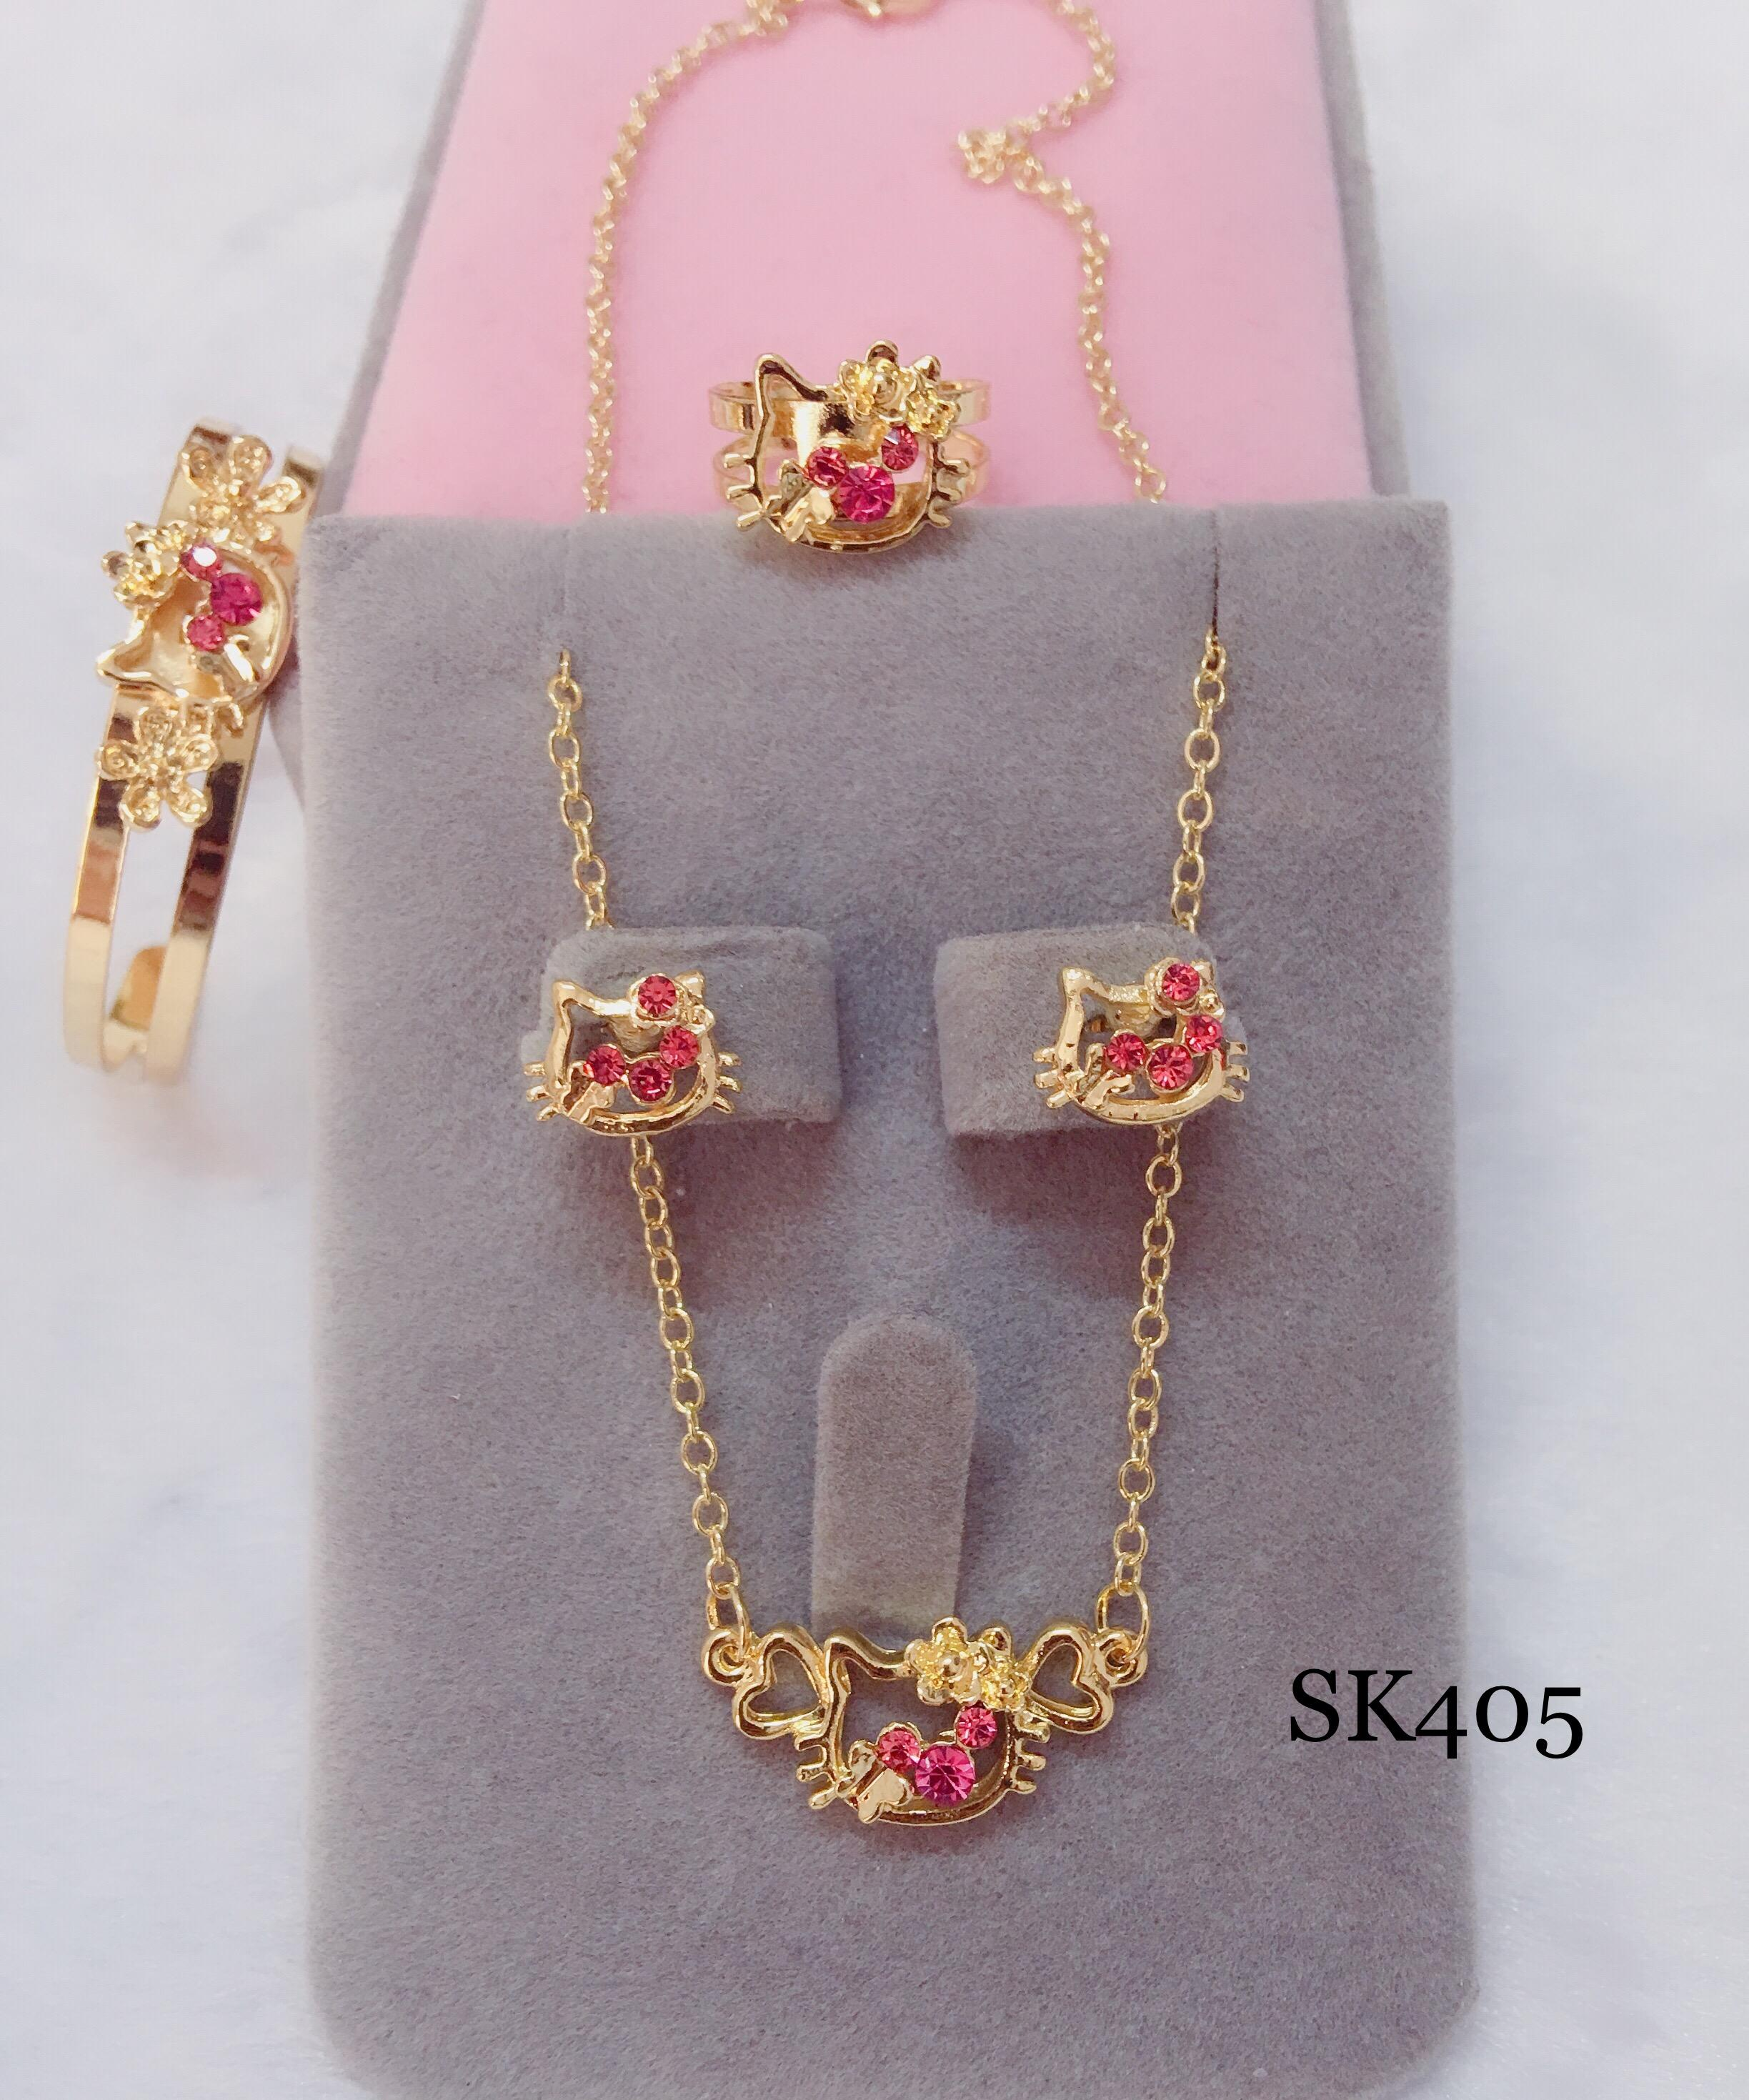 Sk405 18k Rose Gold 4 In 1 Set For Kids By Miss M Shop.